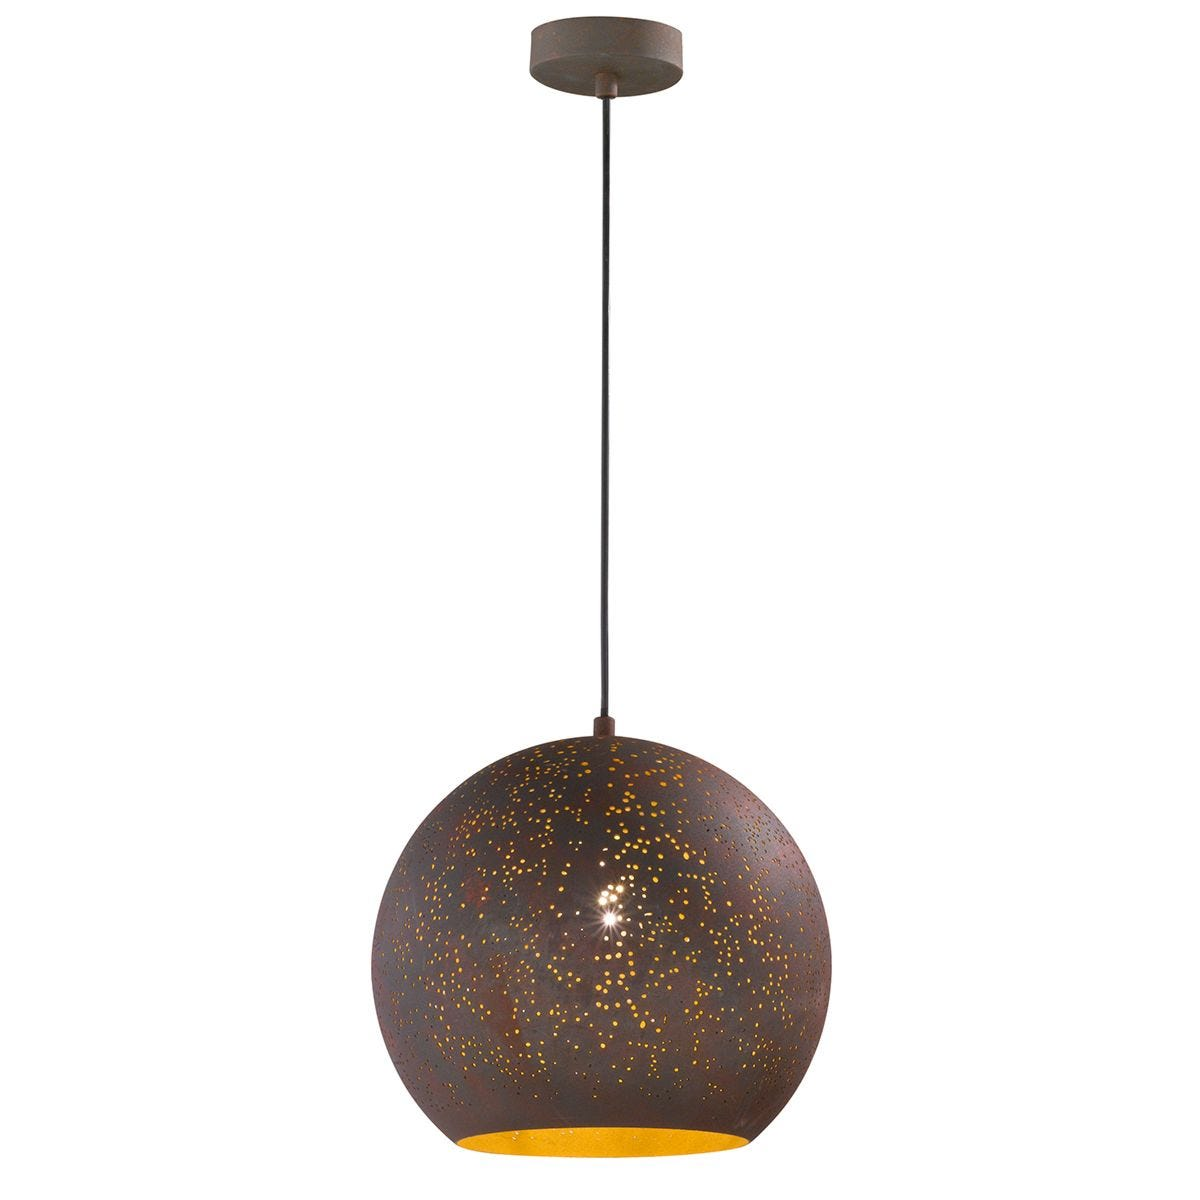 Action Avila Pendant Light - Antique Brown